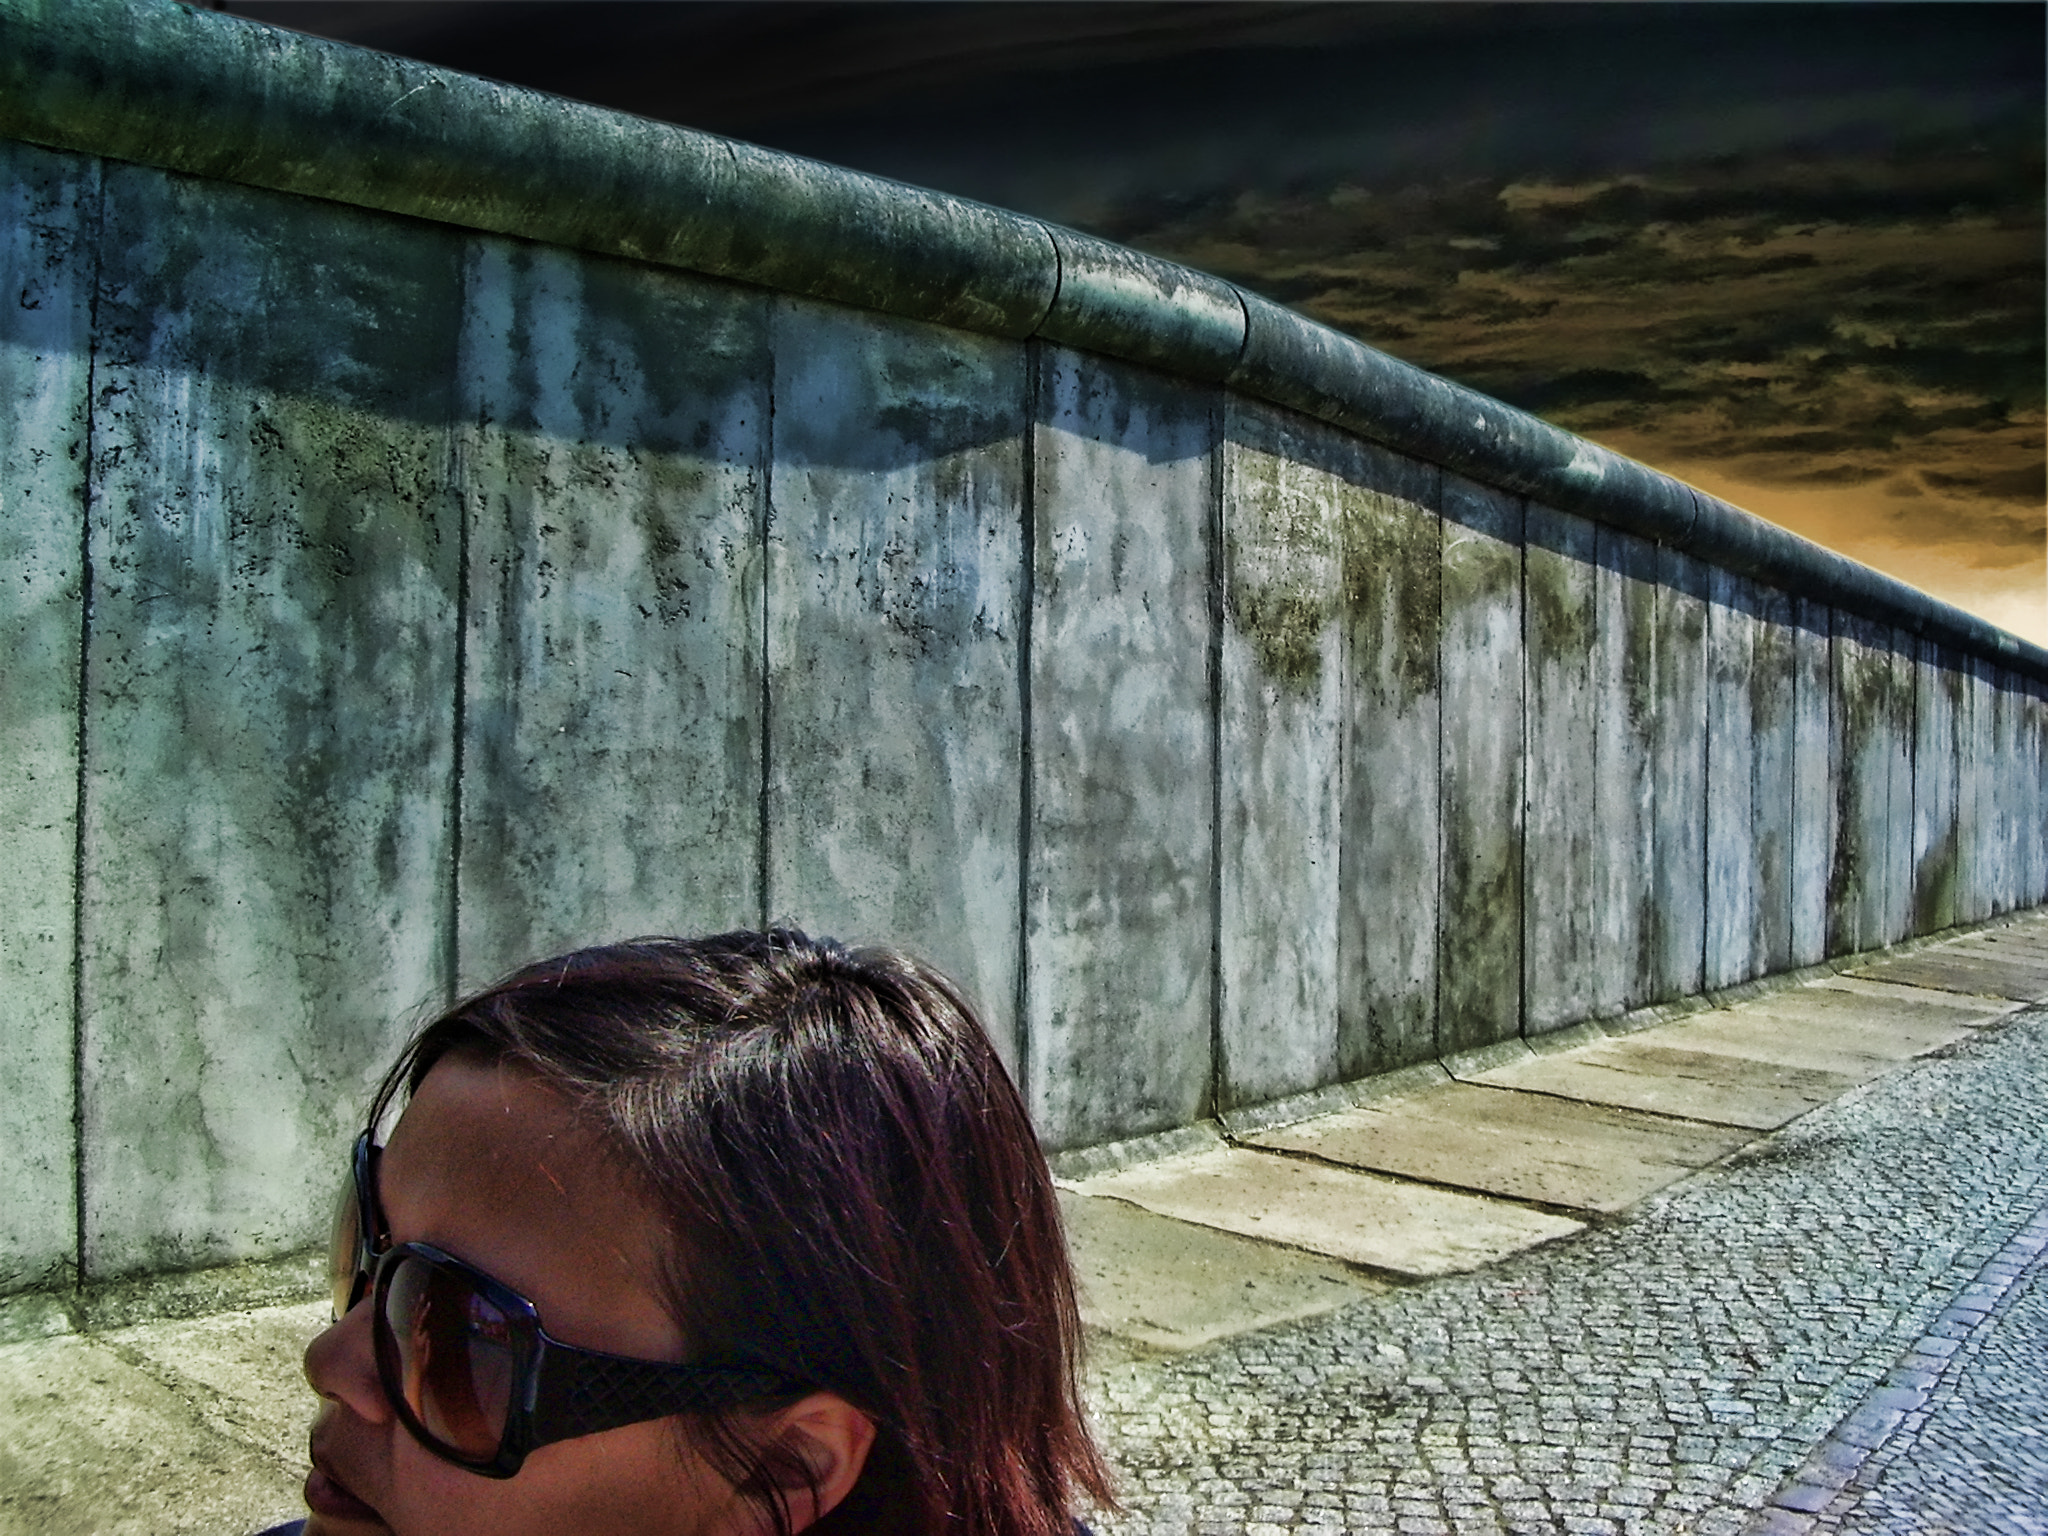 Photograph Girlfriend! Tear down that wall! by carsten morgenstern on 500px